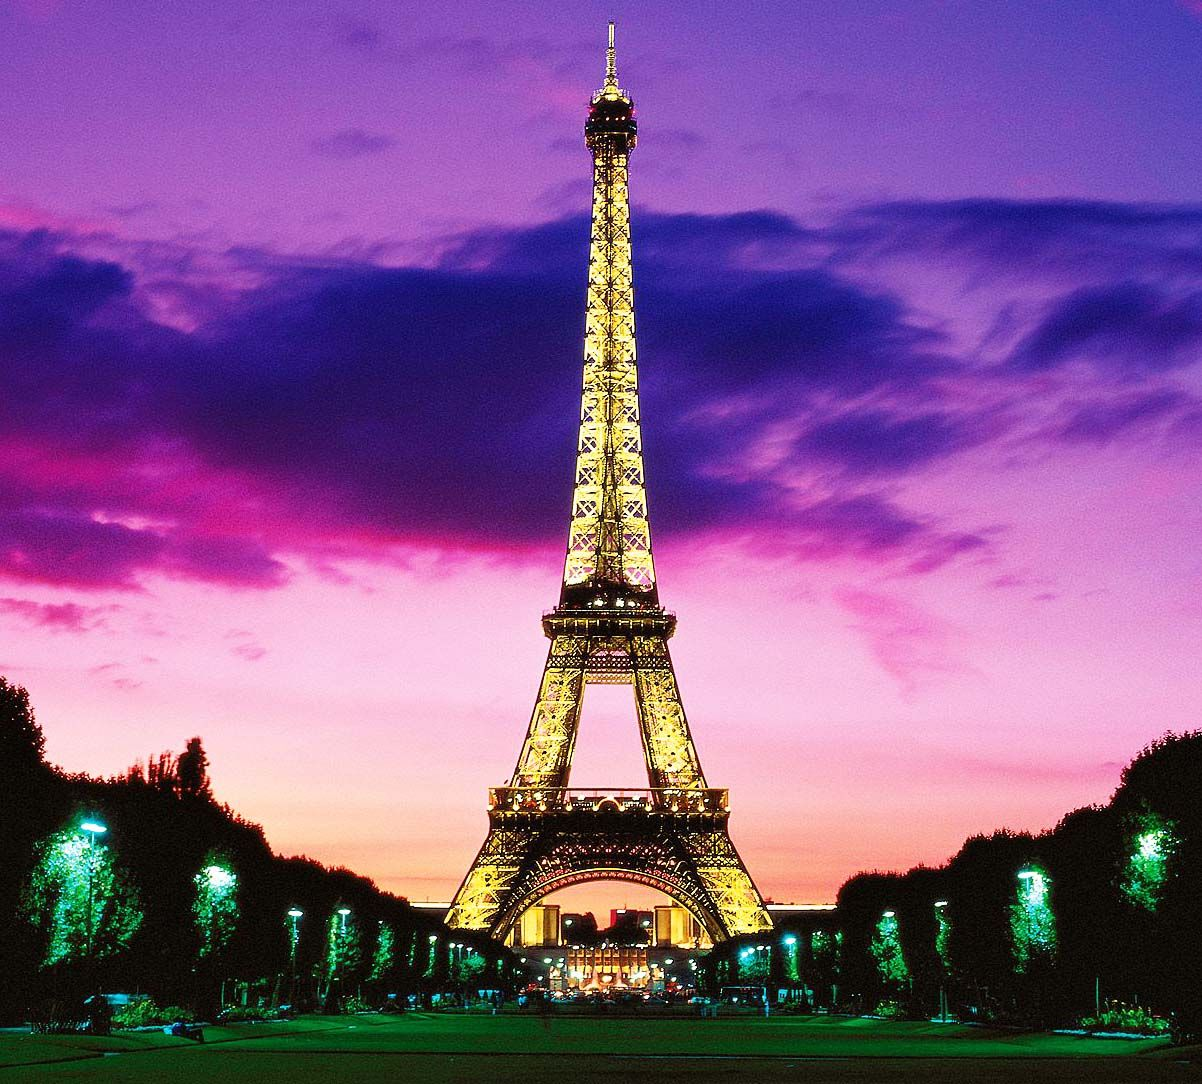 eiffel tower at night wallpapers - wallpaper cave | paris